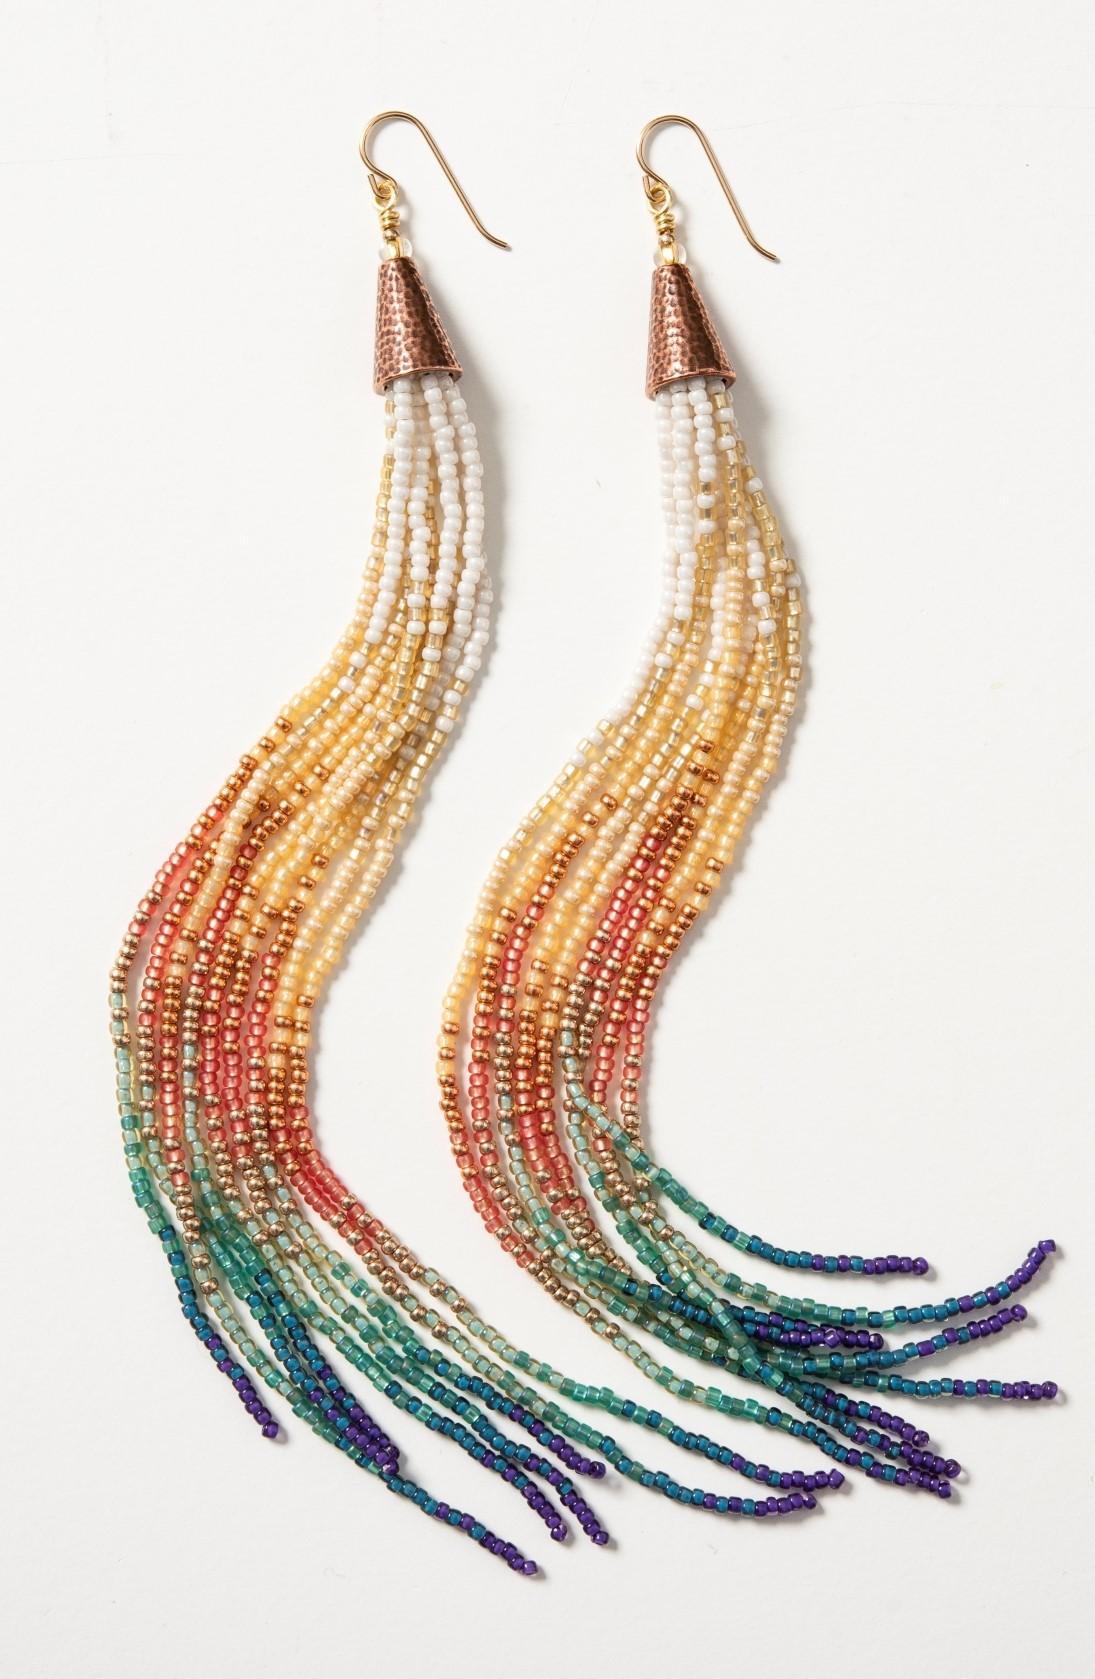 keri-s-earrings-on-white-1200px.jpg